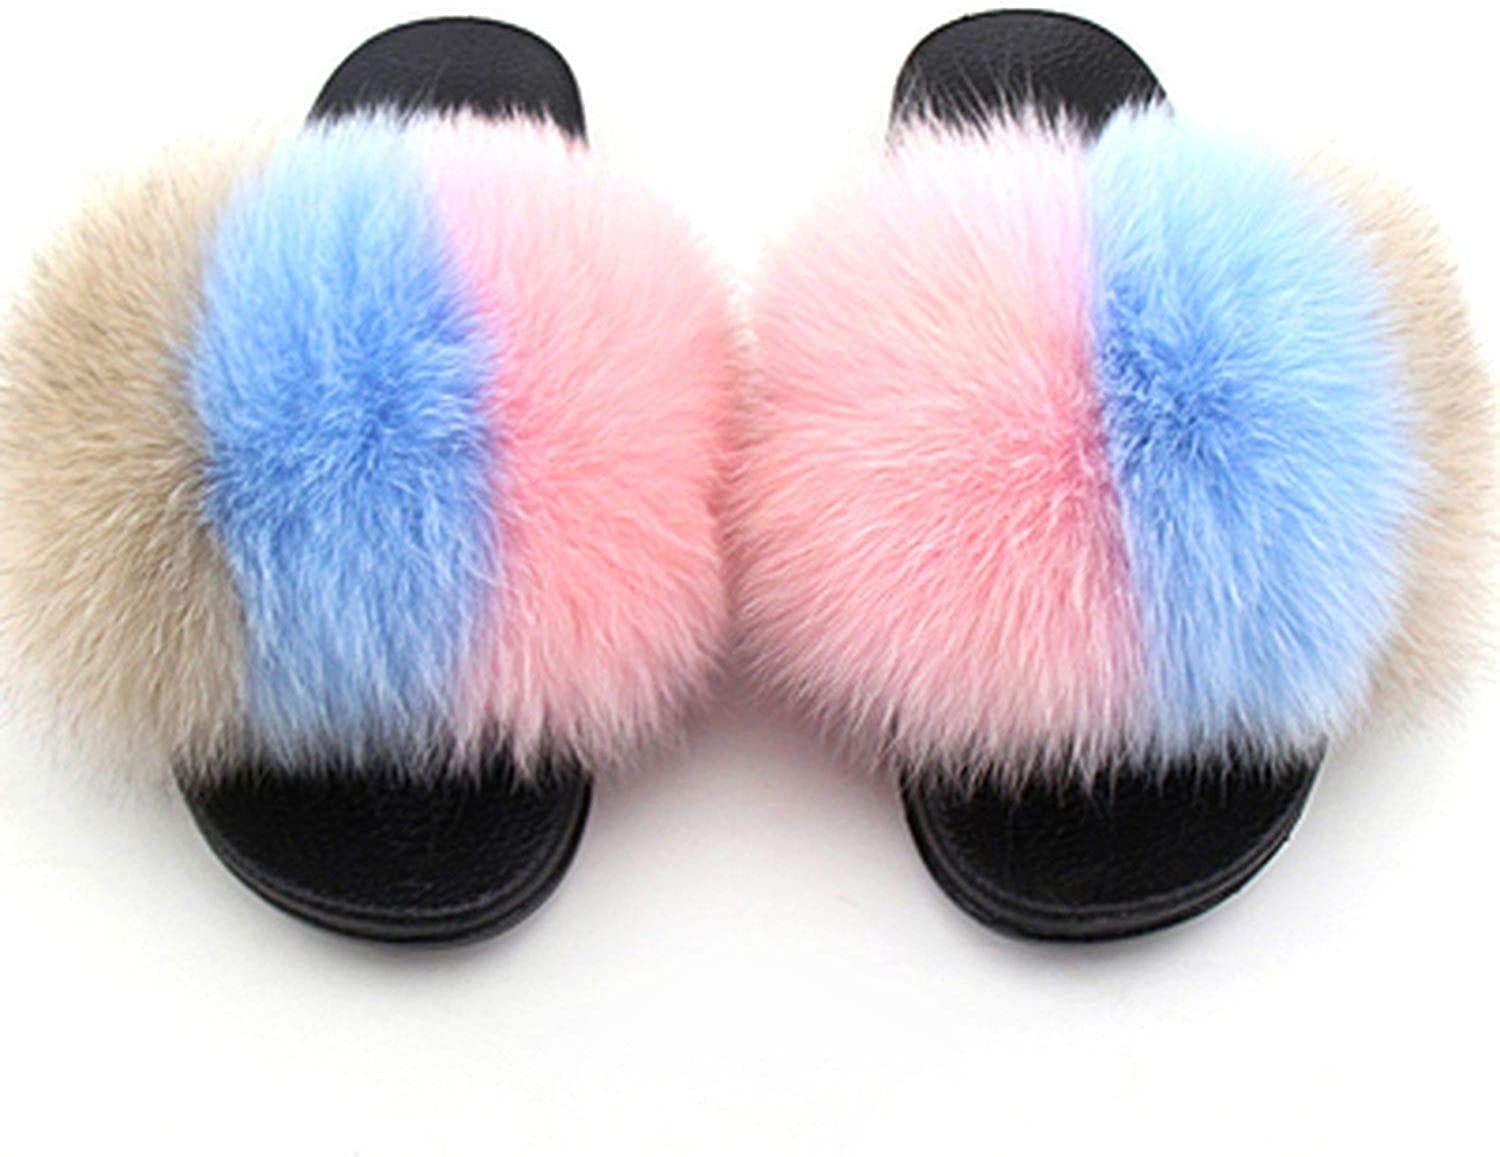 Huntty Plus Size Fur Slippers Mixed colors Open Toe Real Fox Beach Slides 2019 Women's Furry Flip Flops Hair shoes,Mixed colors,8.5